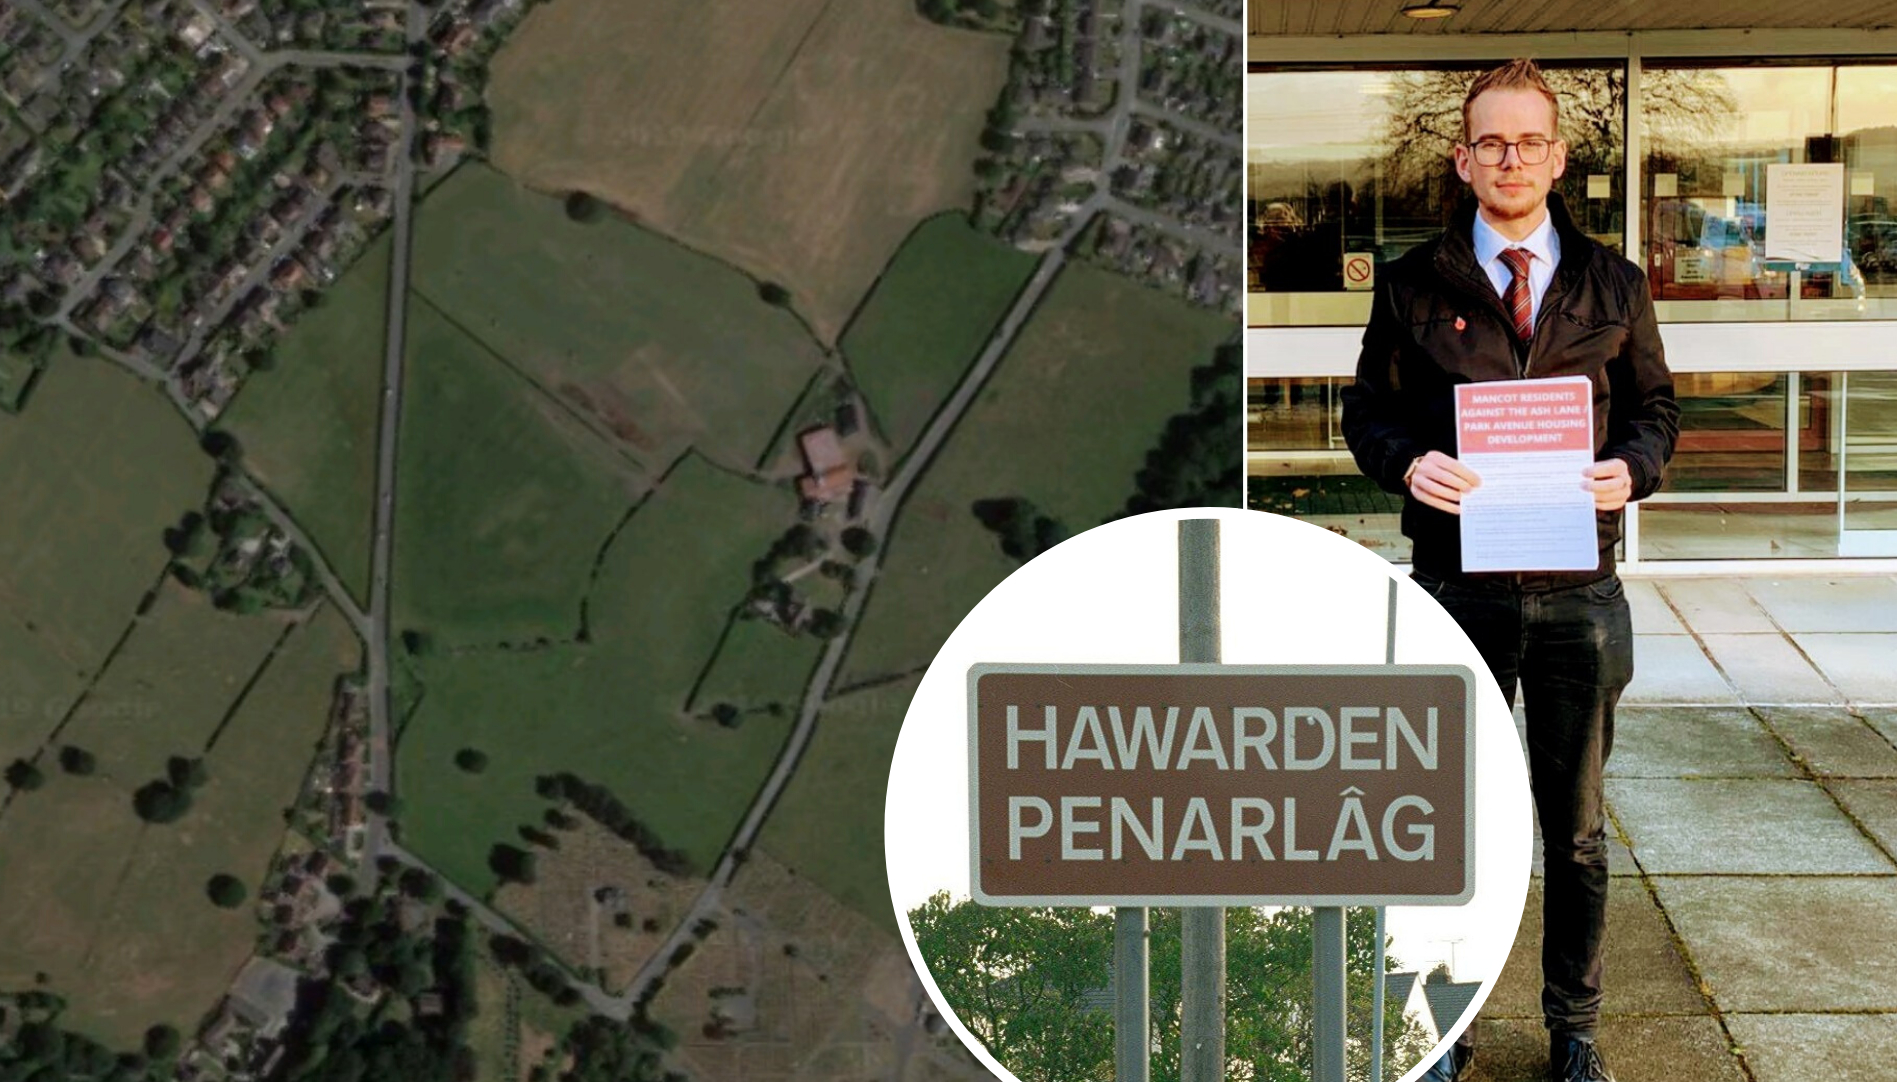 Hawarden councillor delivers petition to Flintshire Council opposing plans for 280 homes